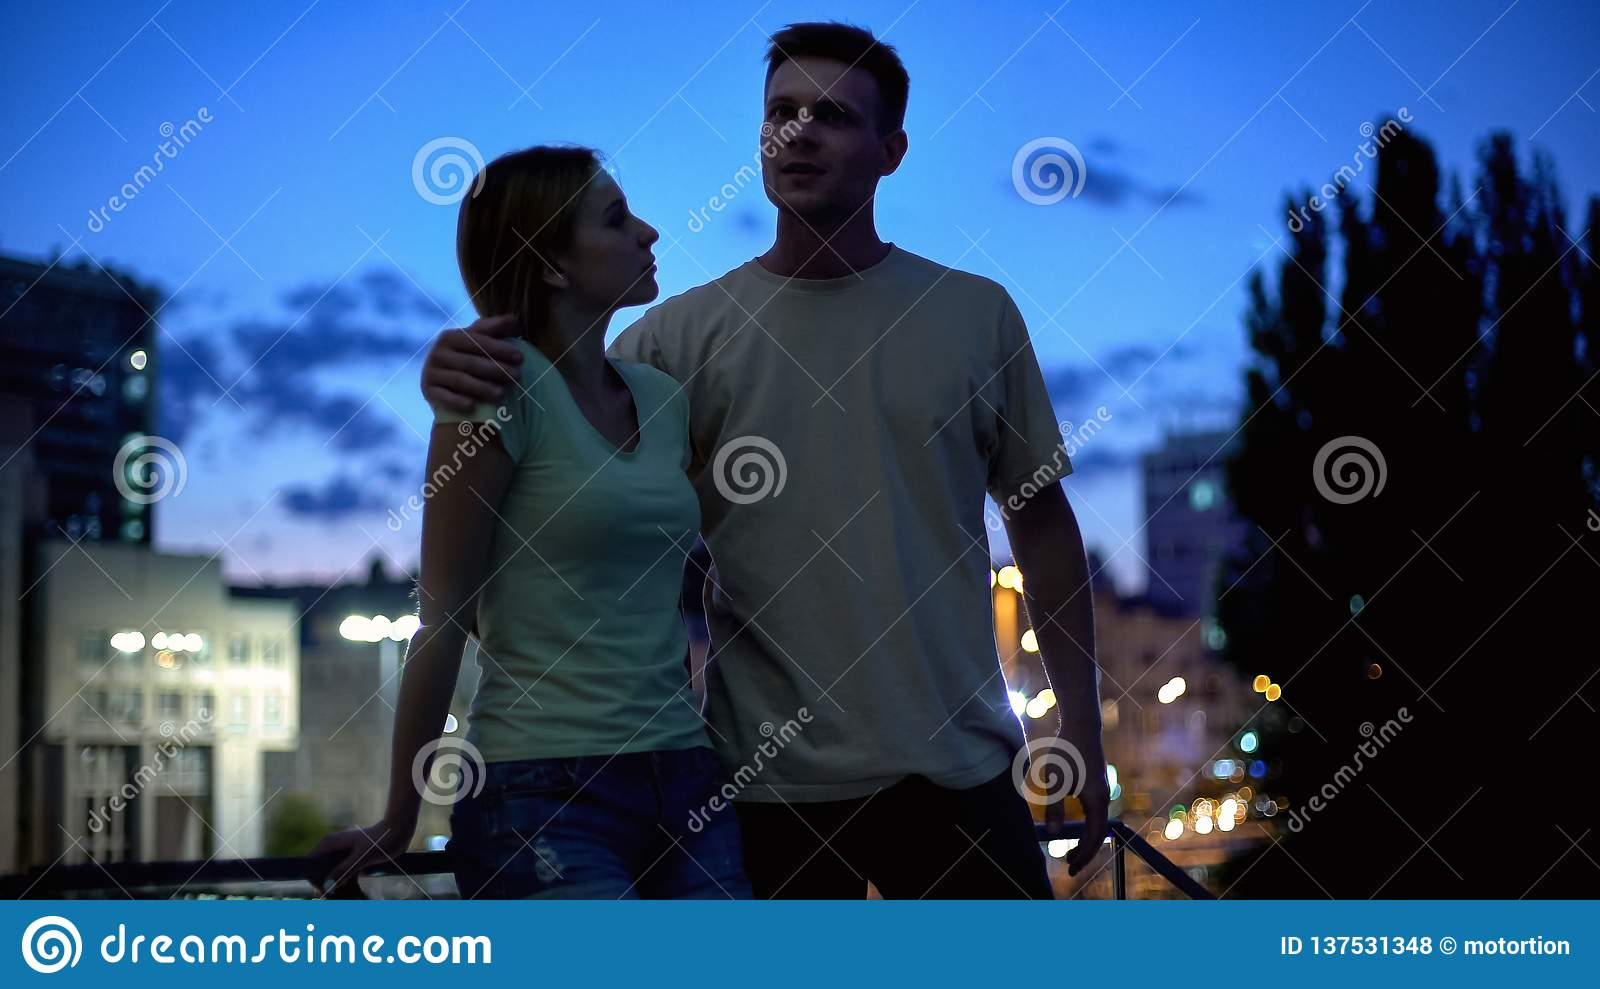 Young couple in casual clothes communicating, after-work walk in evening city